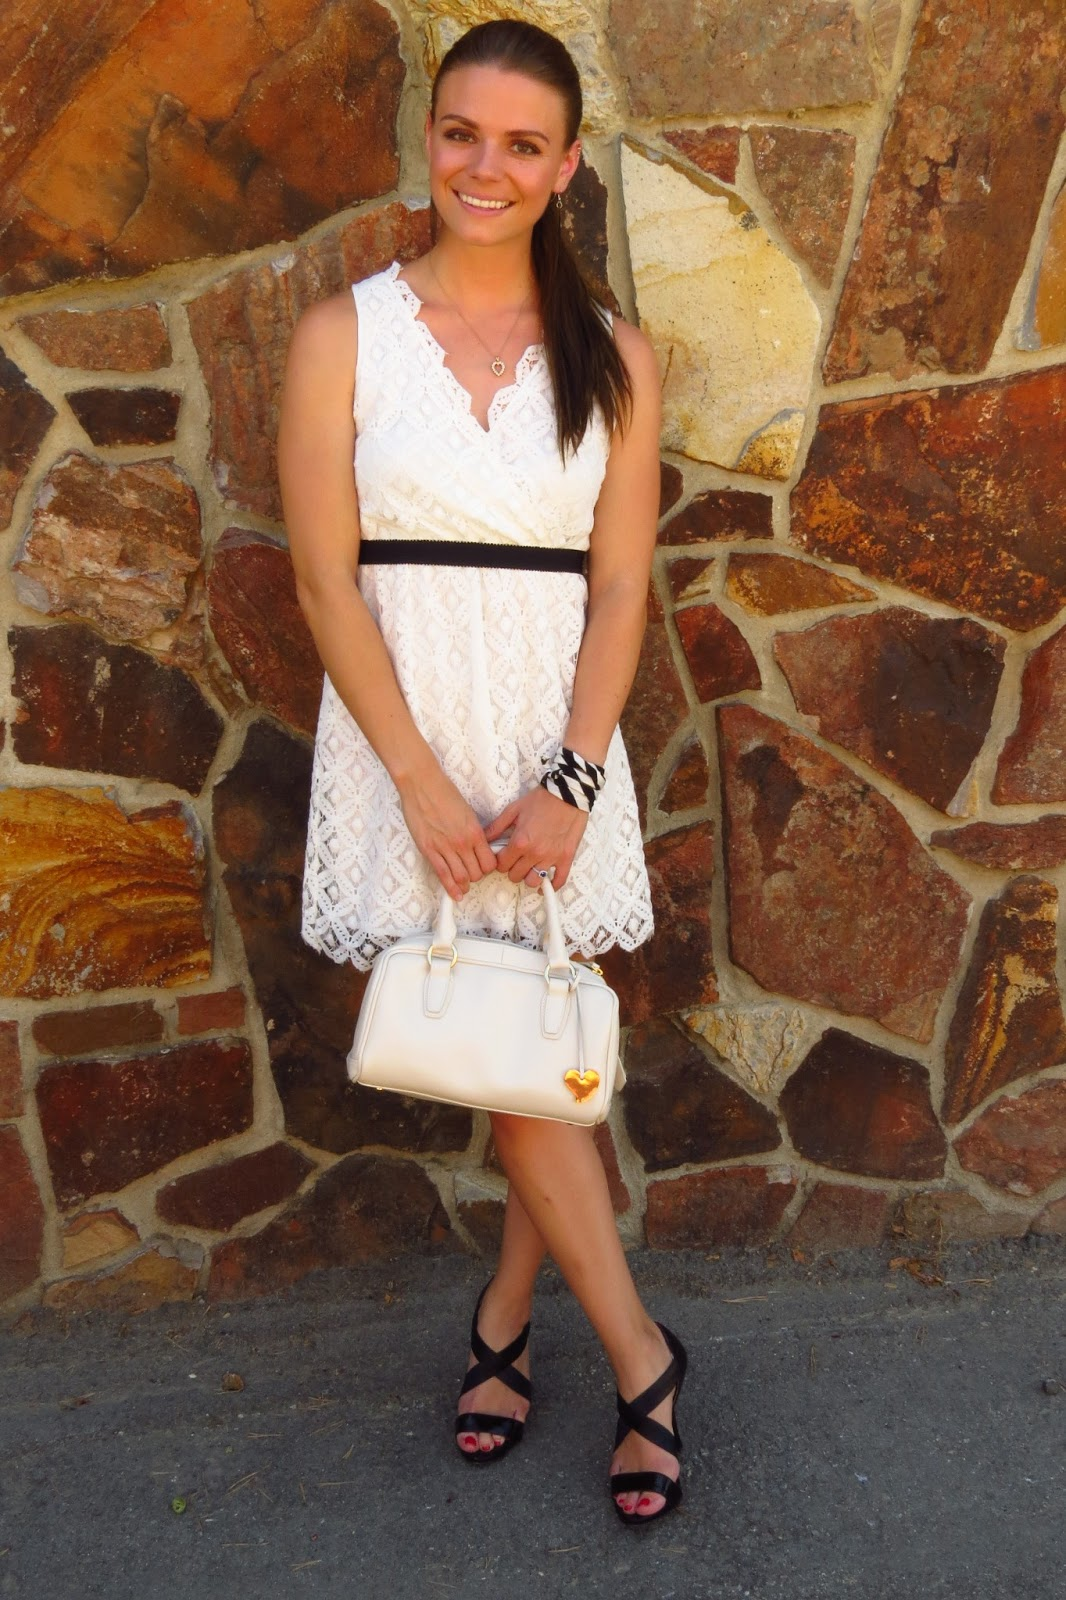 White Lace Dress and Black Heels